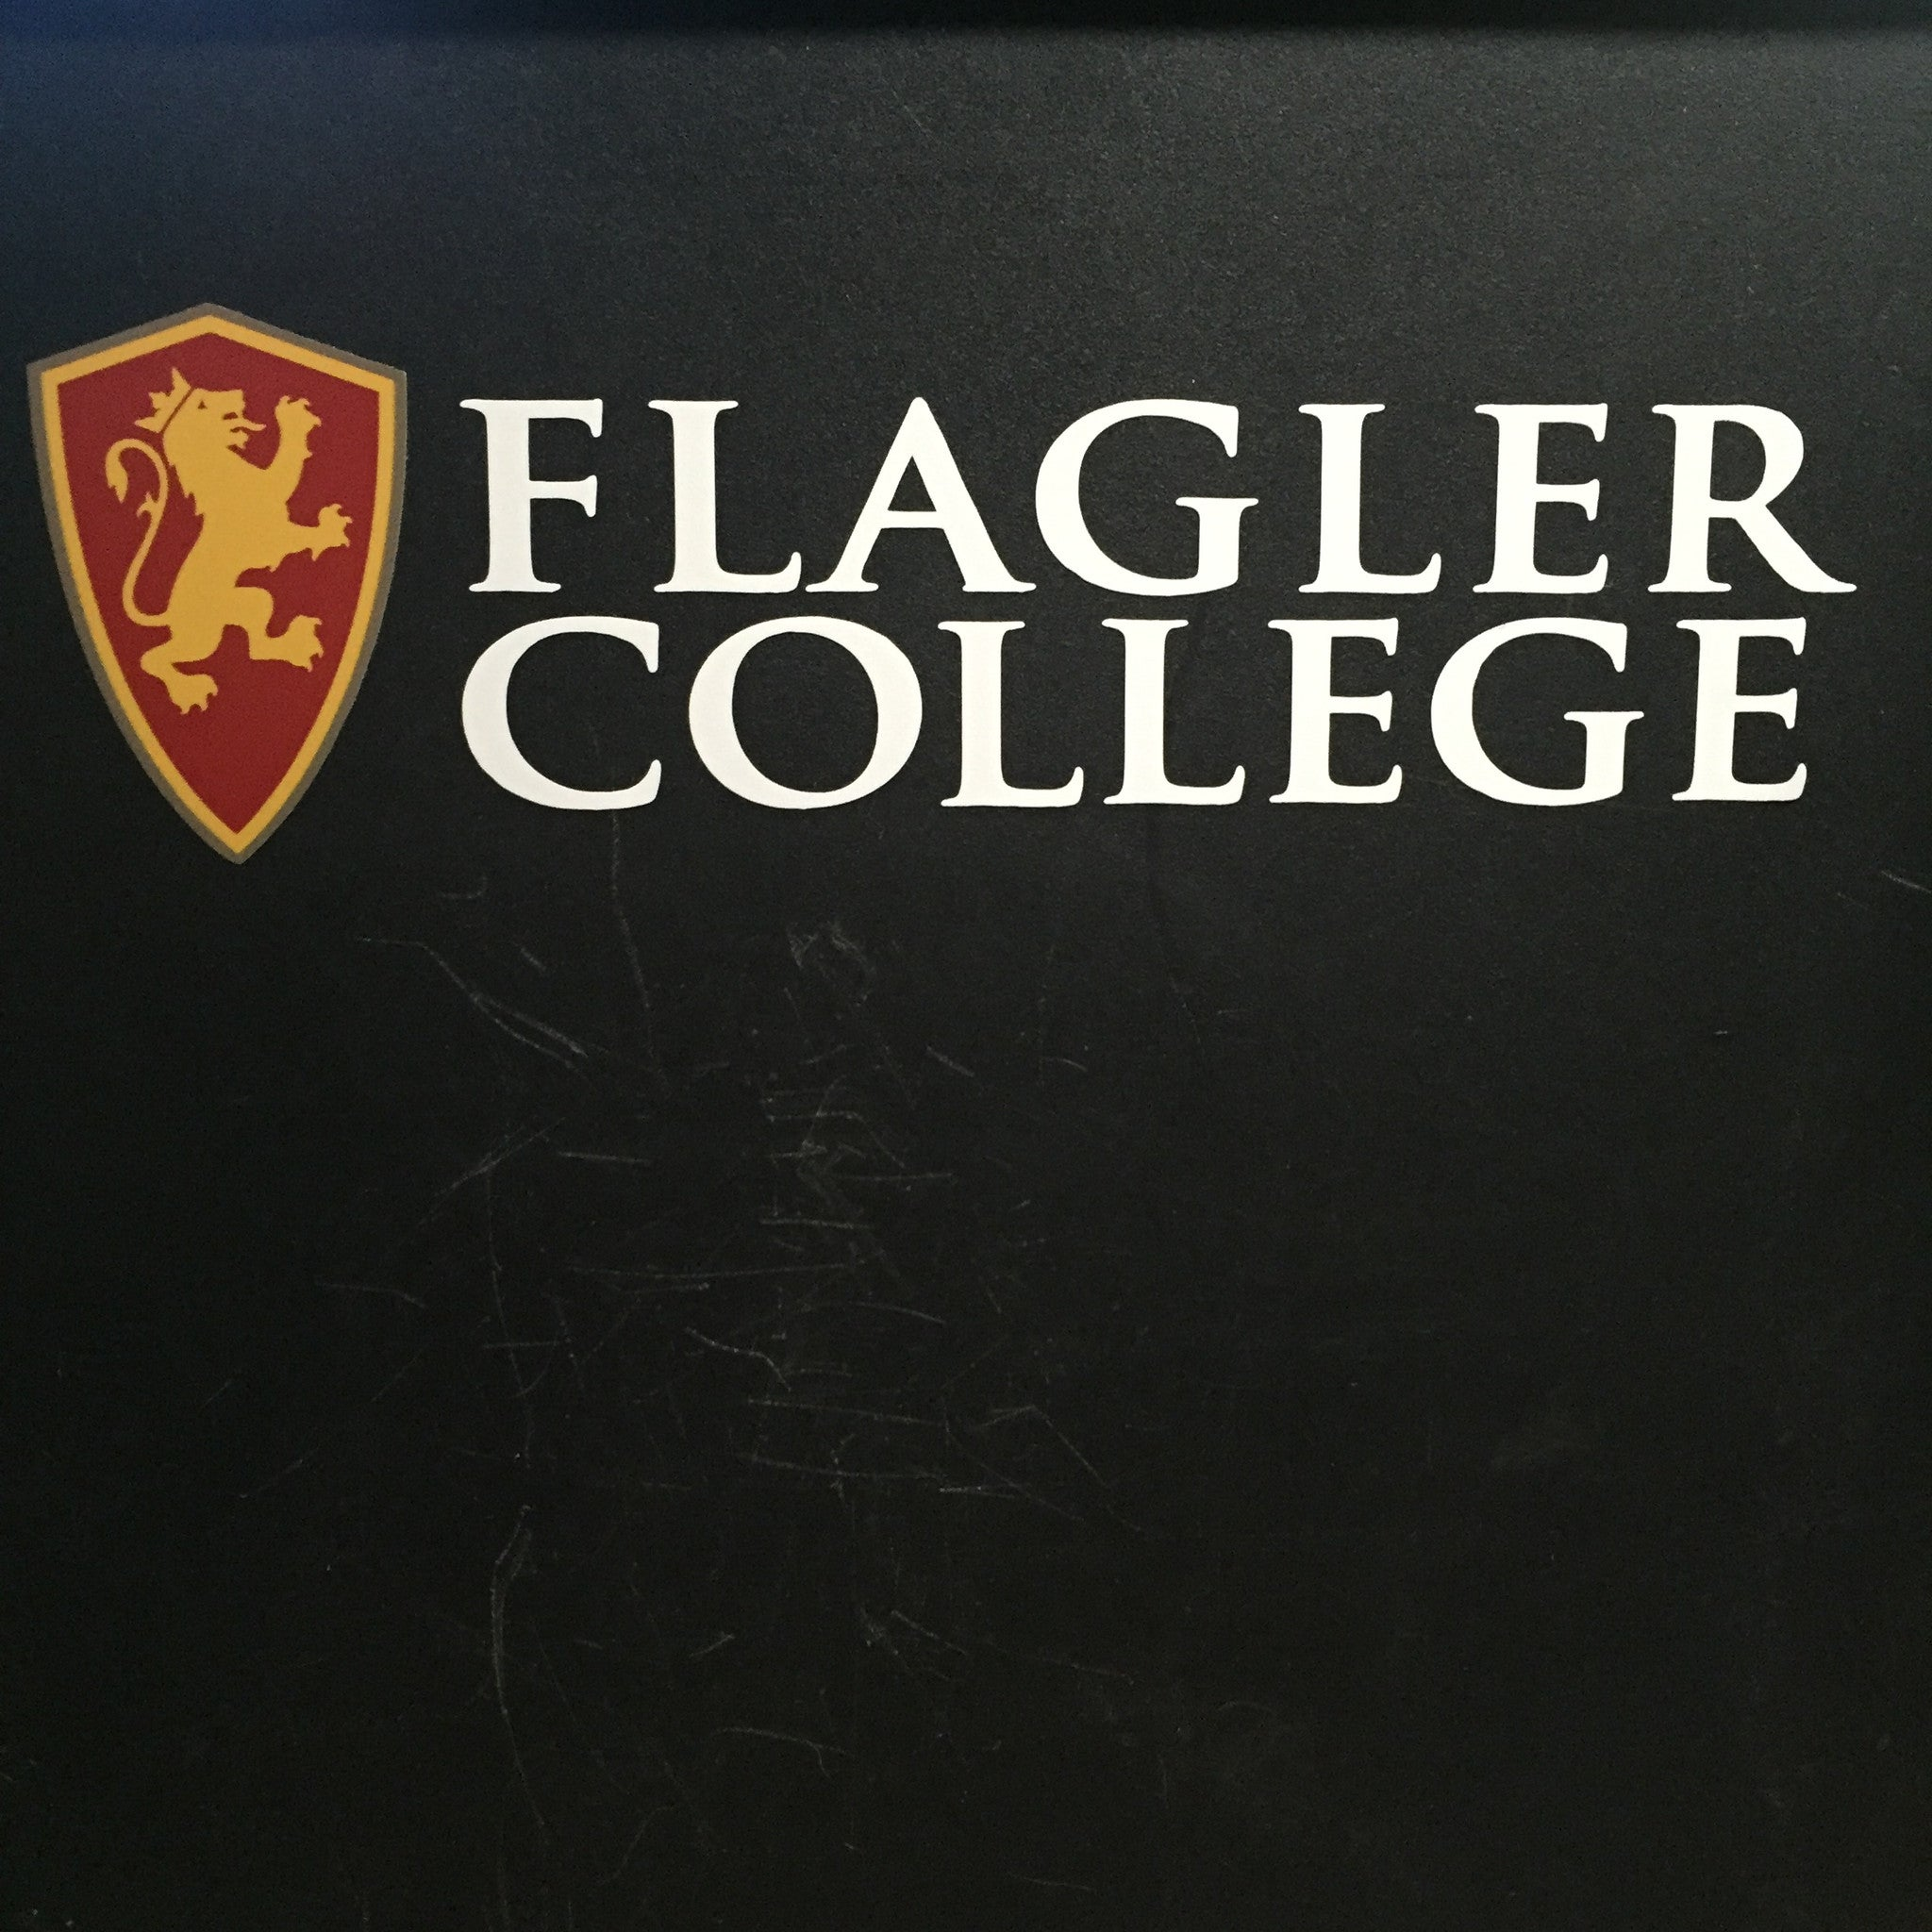 Flagler College with Shield Decal